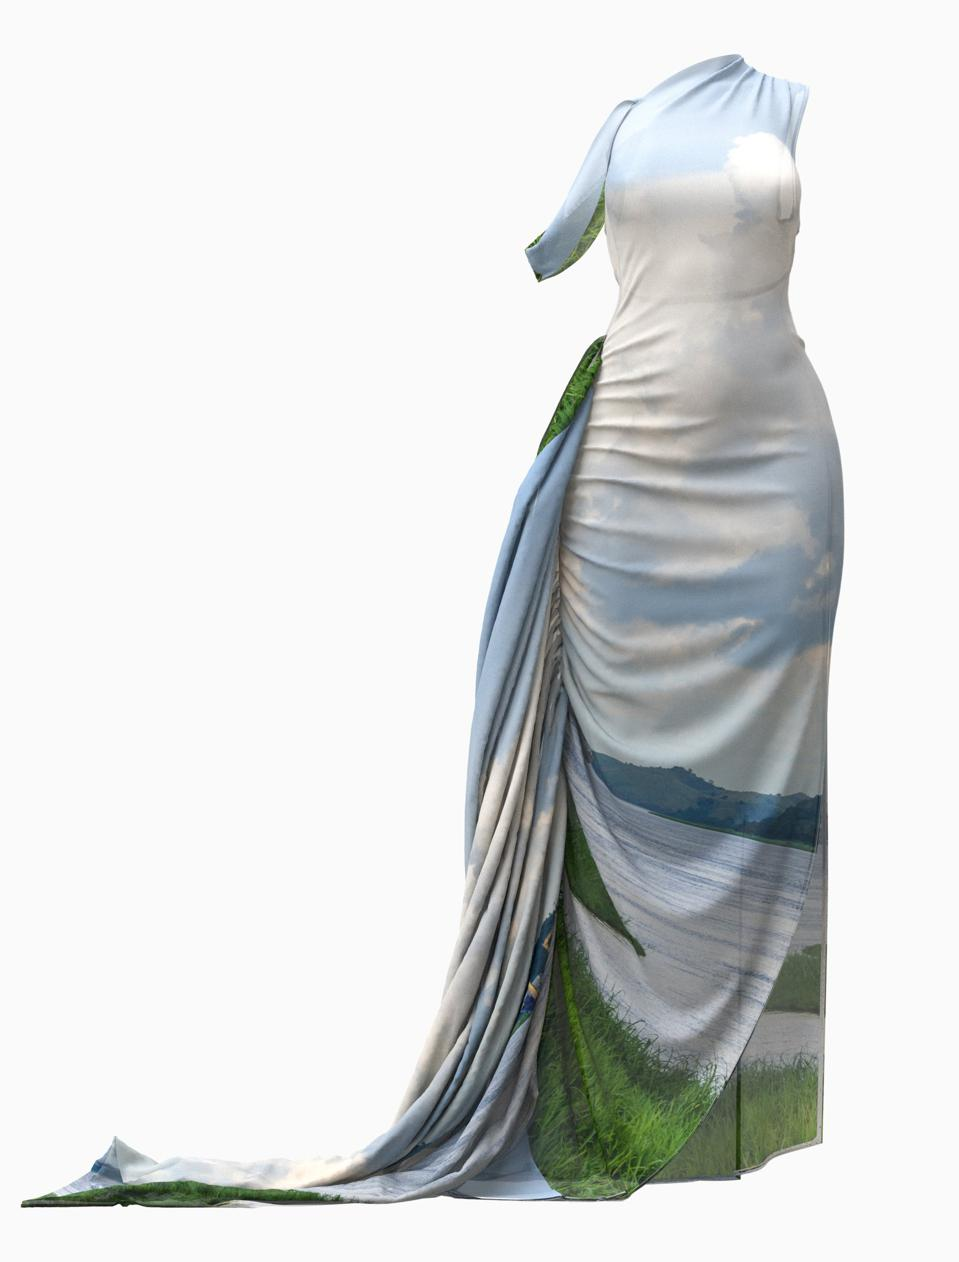 Maxi dress portraying where the Congolese river meets land